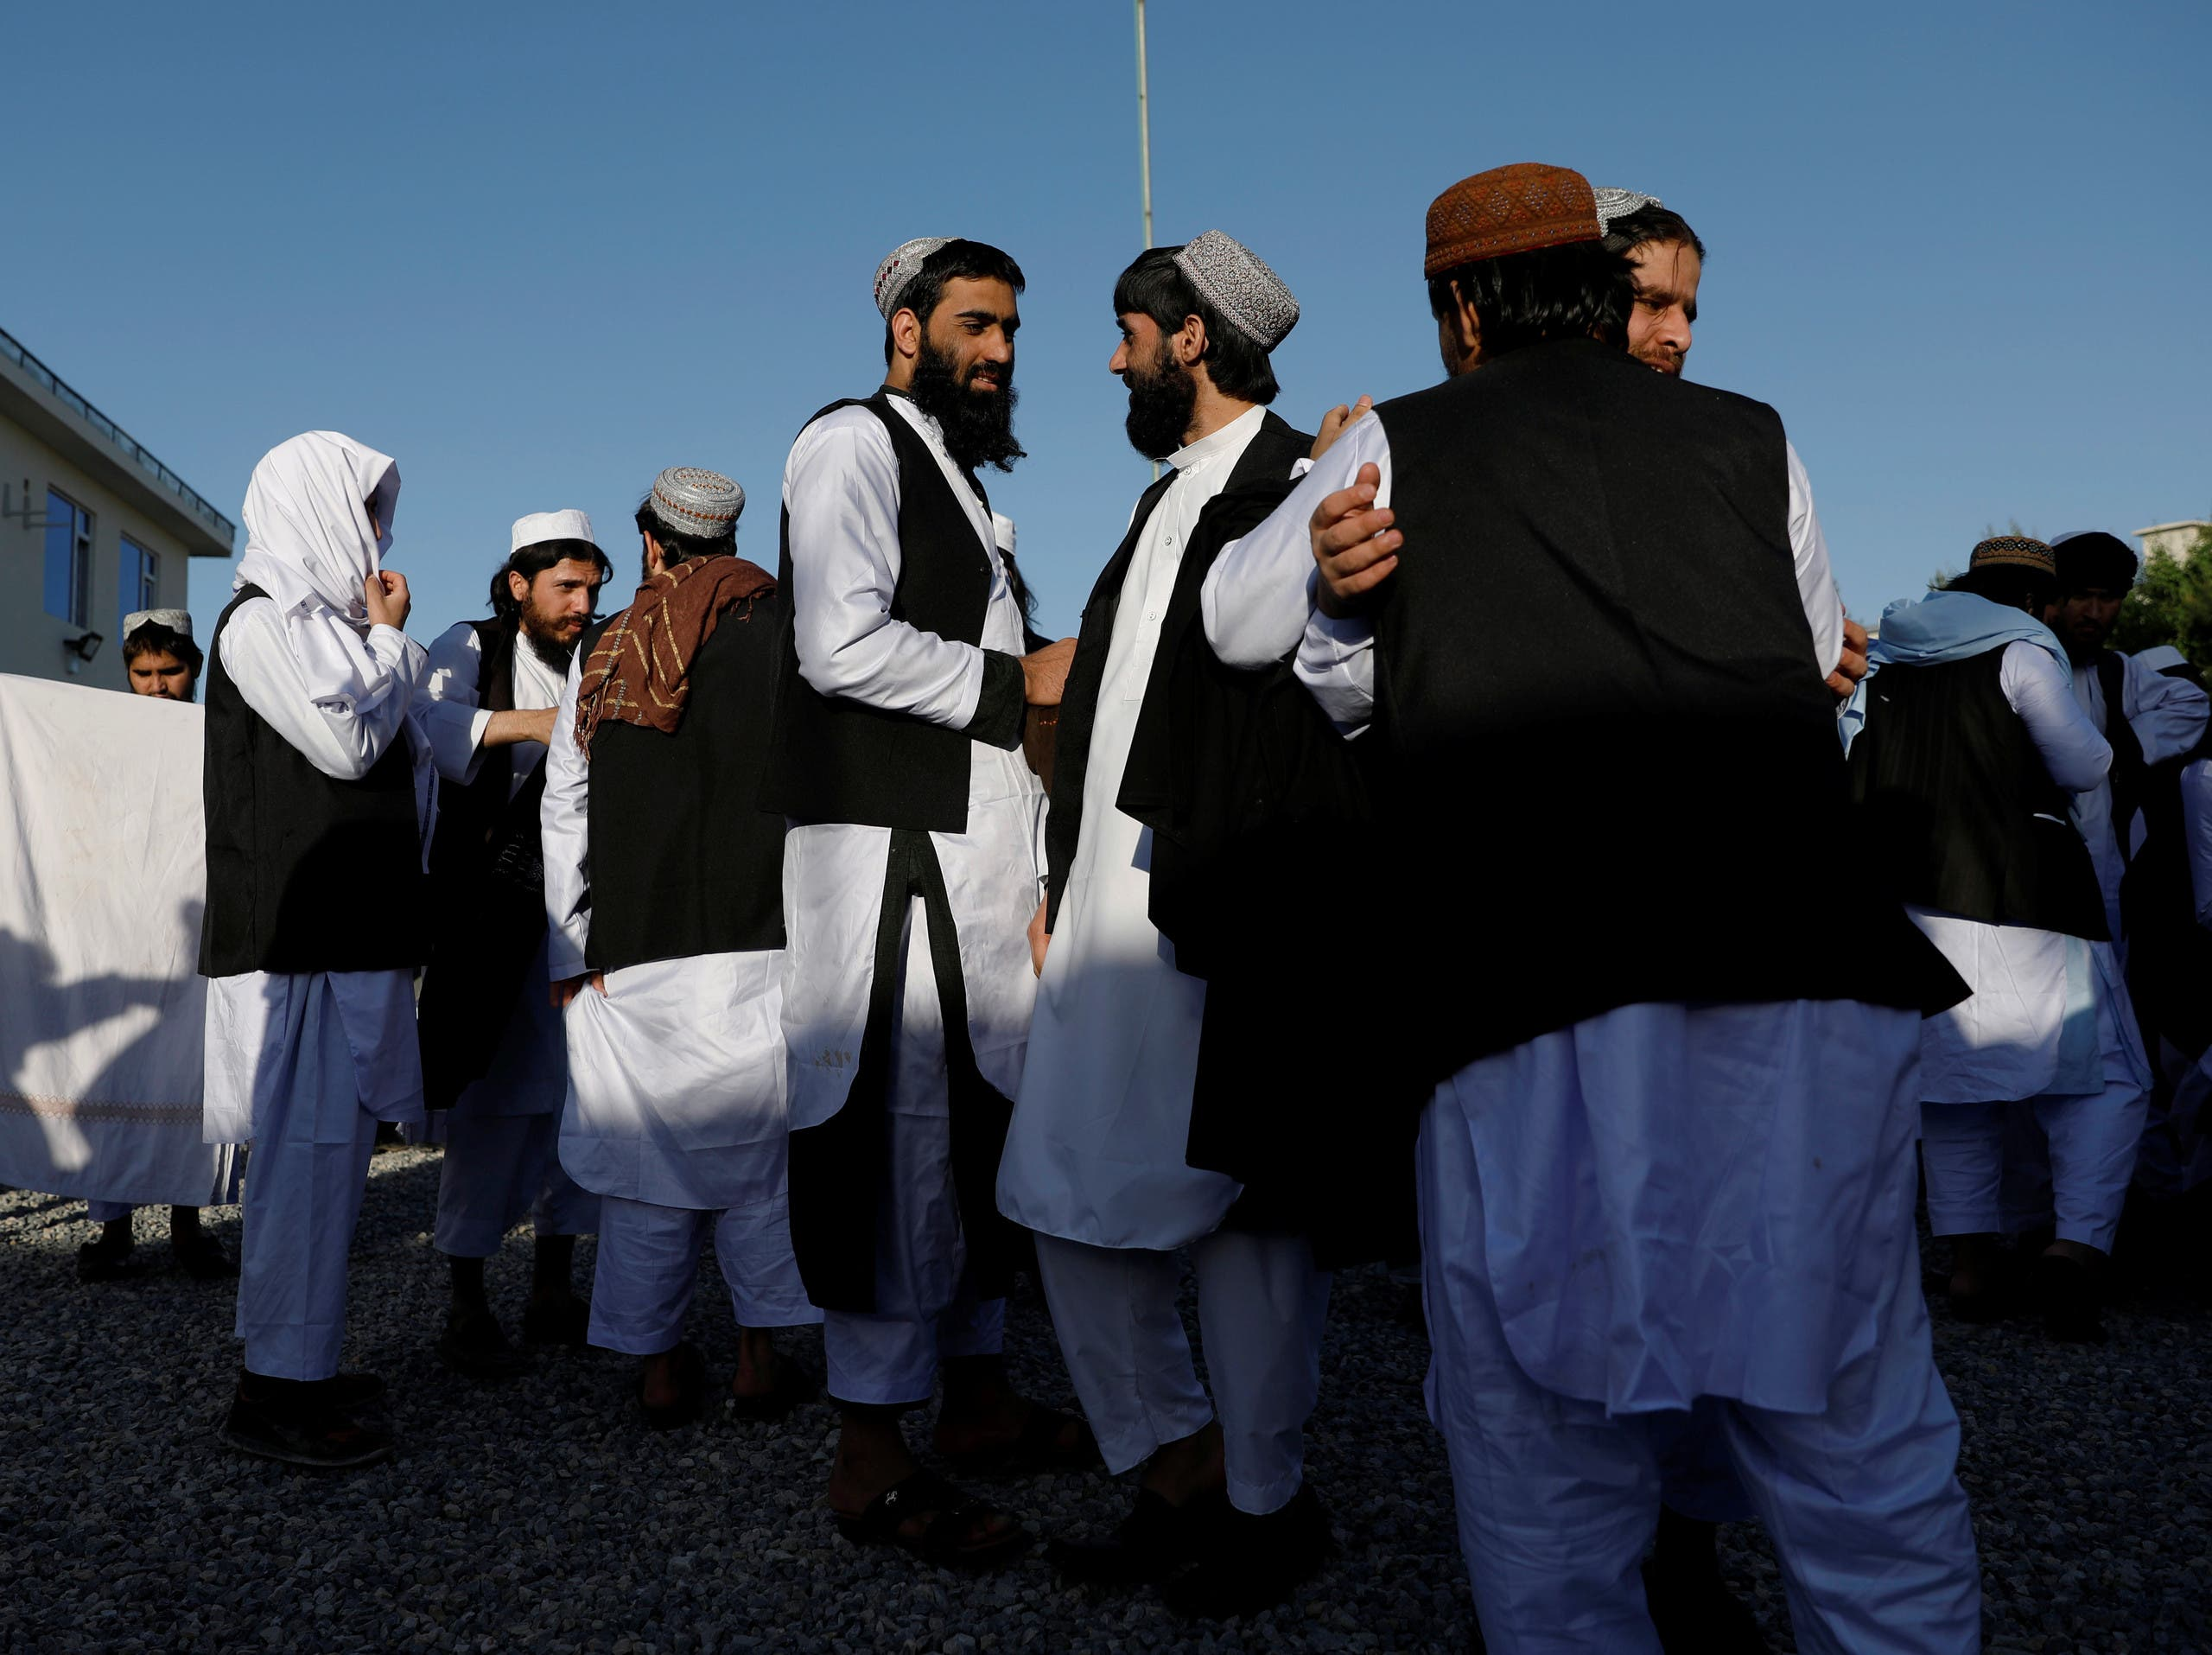 Newly freed Taliban prisoners greet each other at Pul-i-Charkhi prison, in Kabul, Afghanistan May 26, 2020. (Reuters)